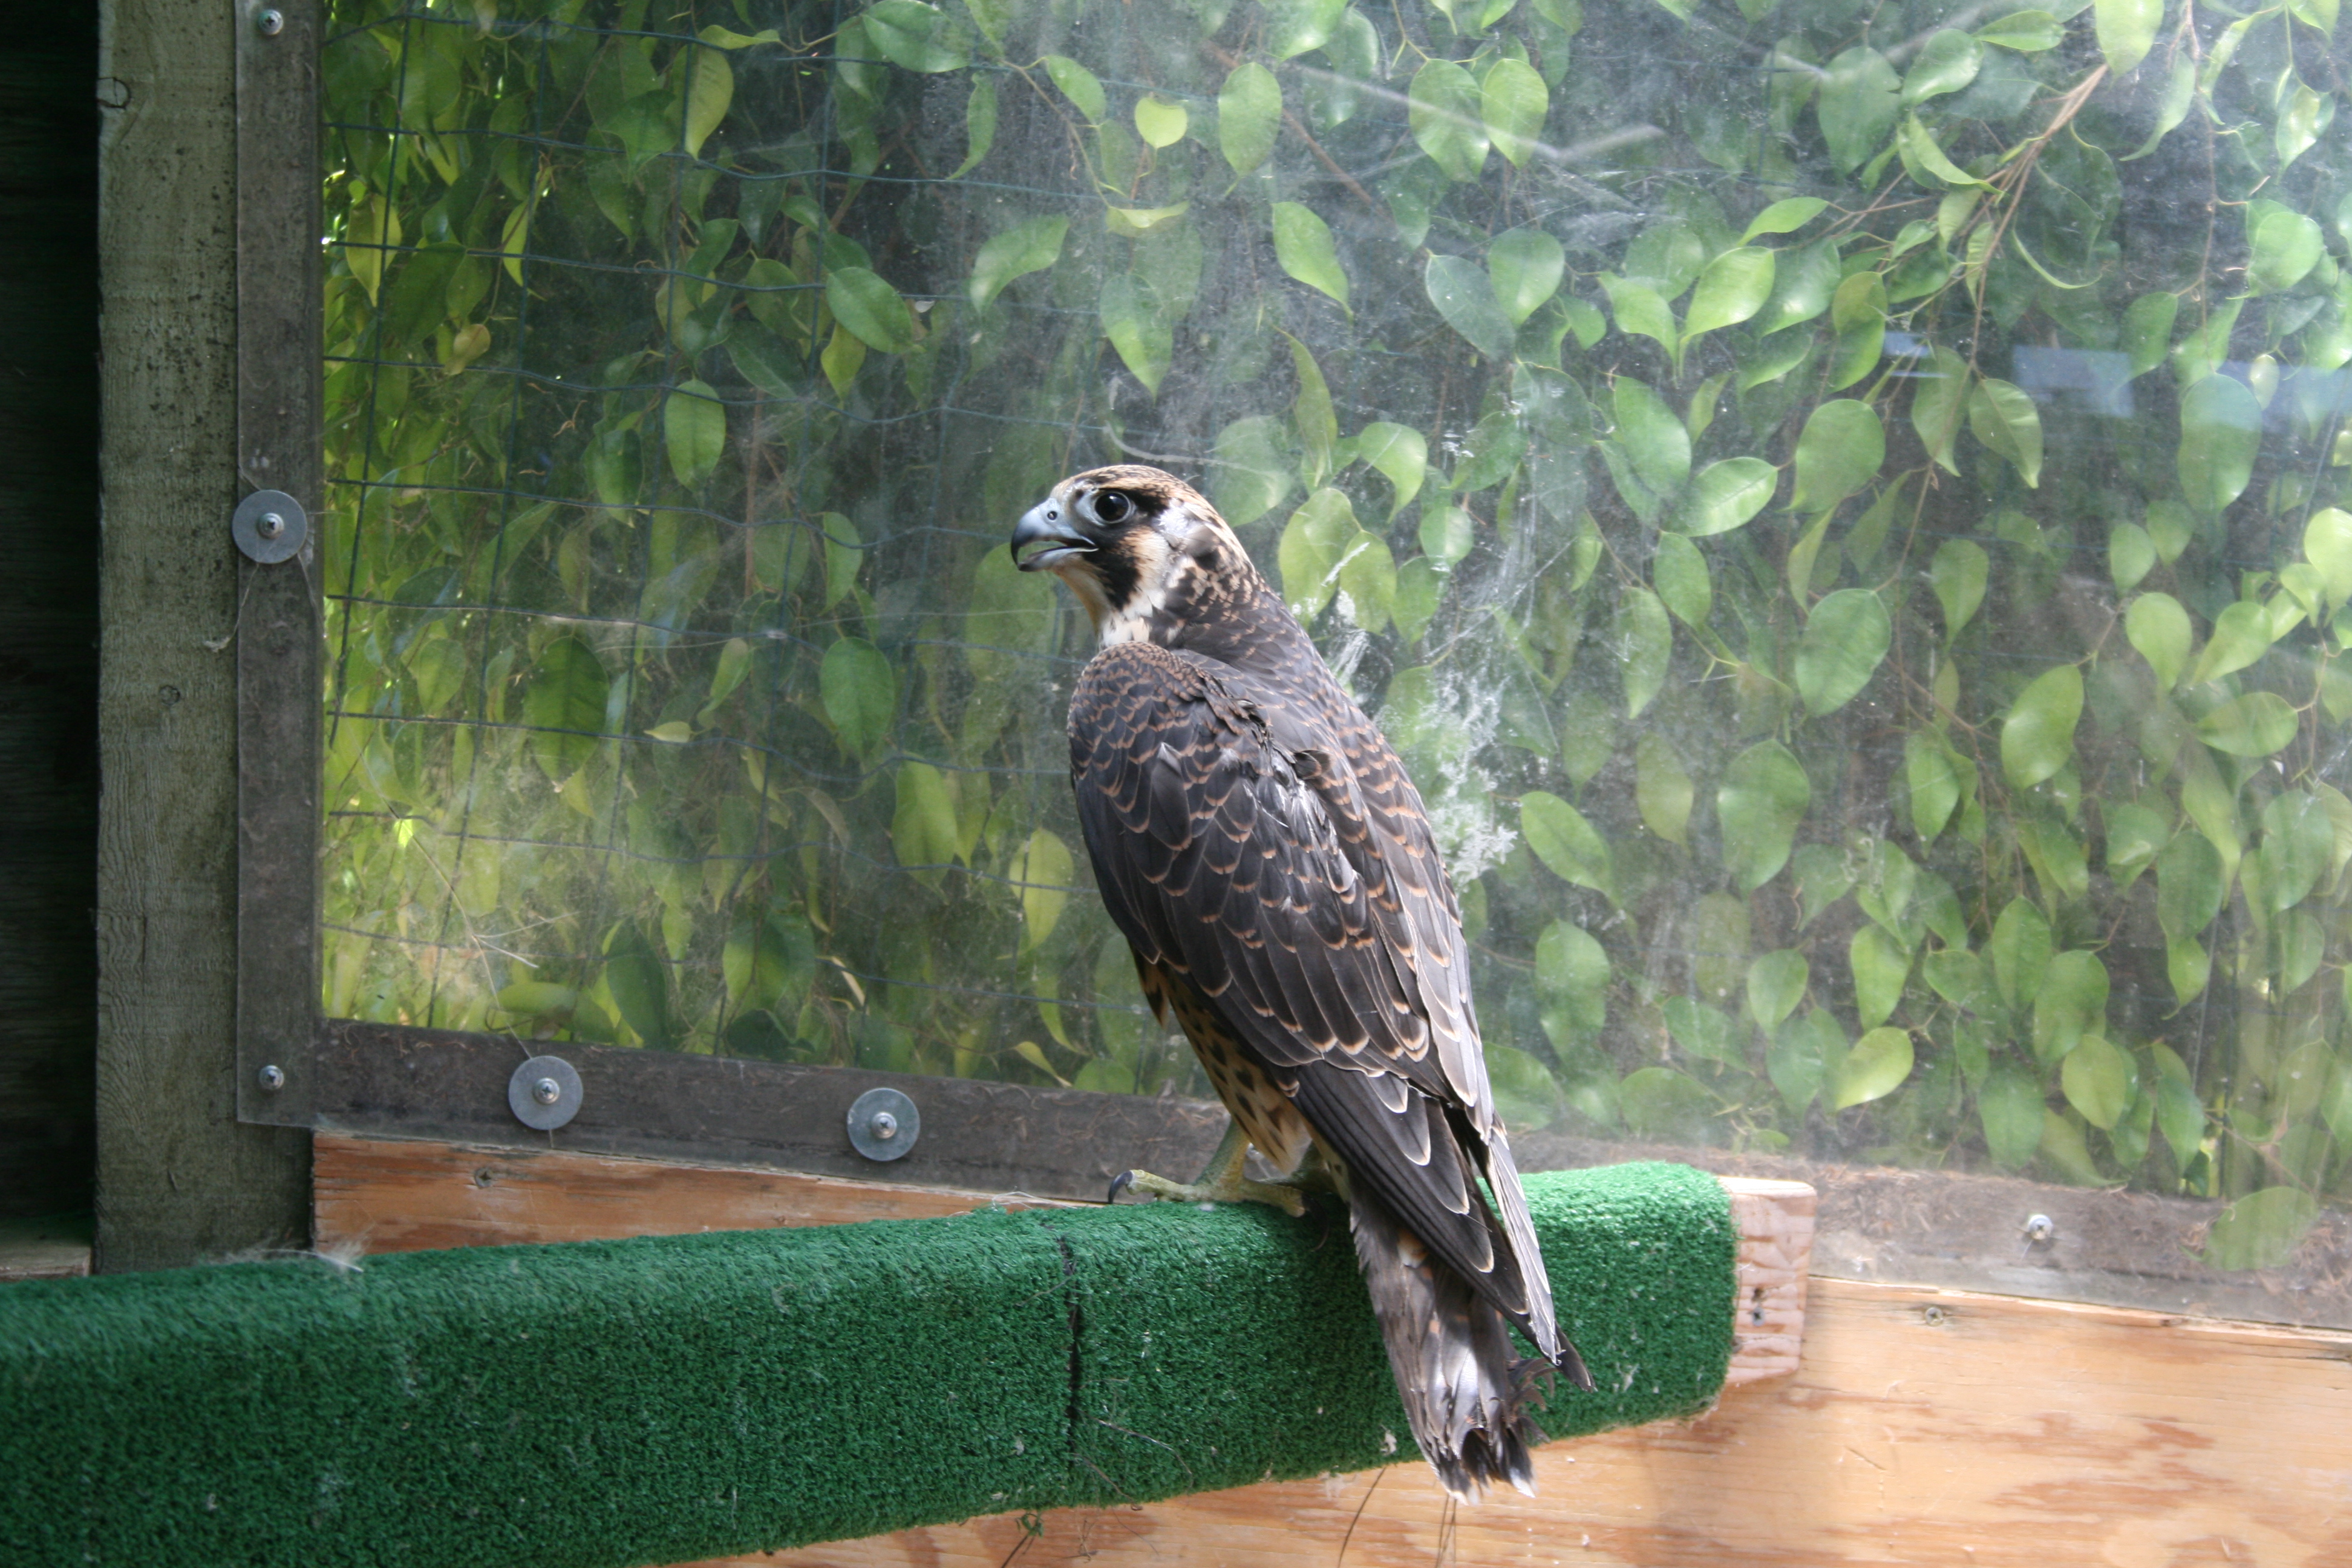 A healthy happy peregrine...